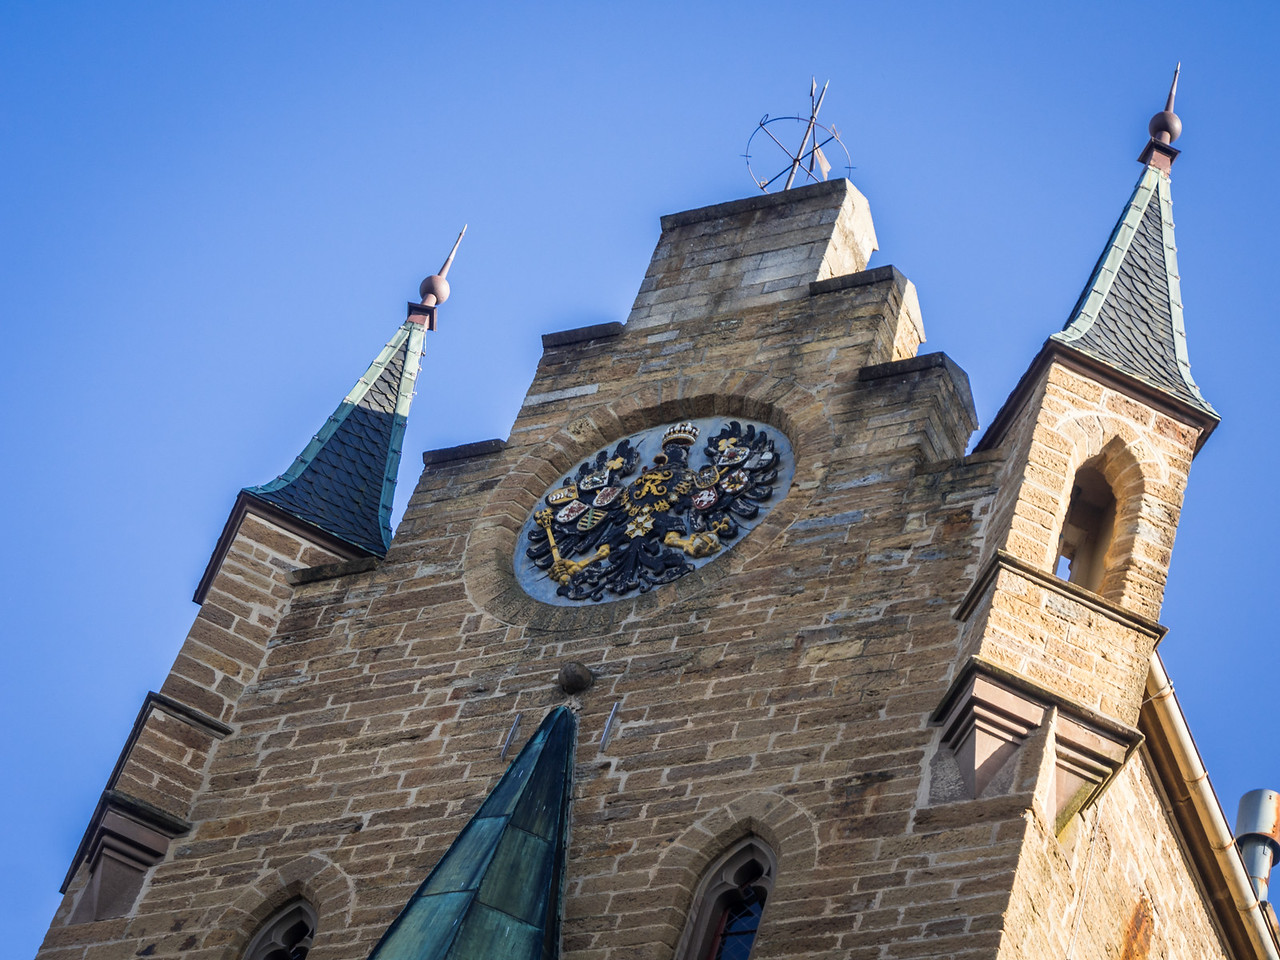 Towers and Coat of Arms, Hohenzollern Castle, Swabia